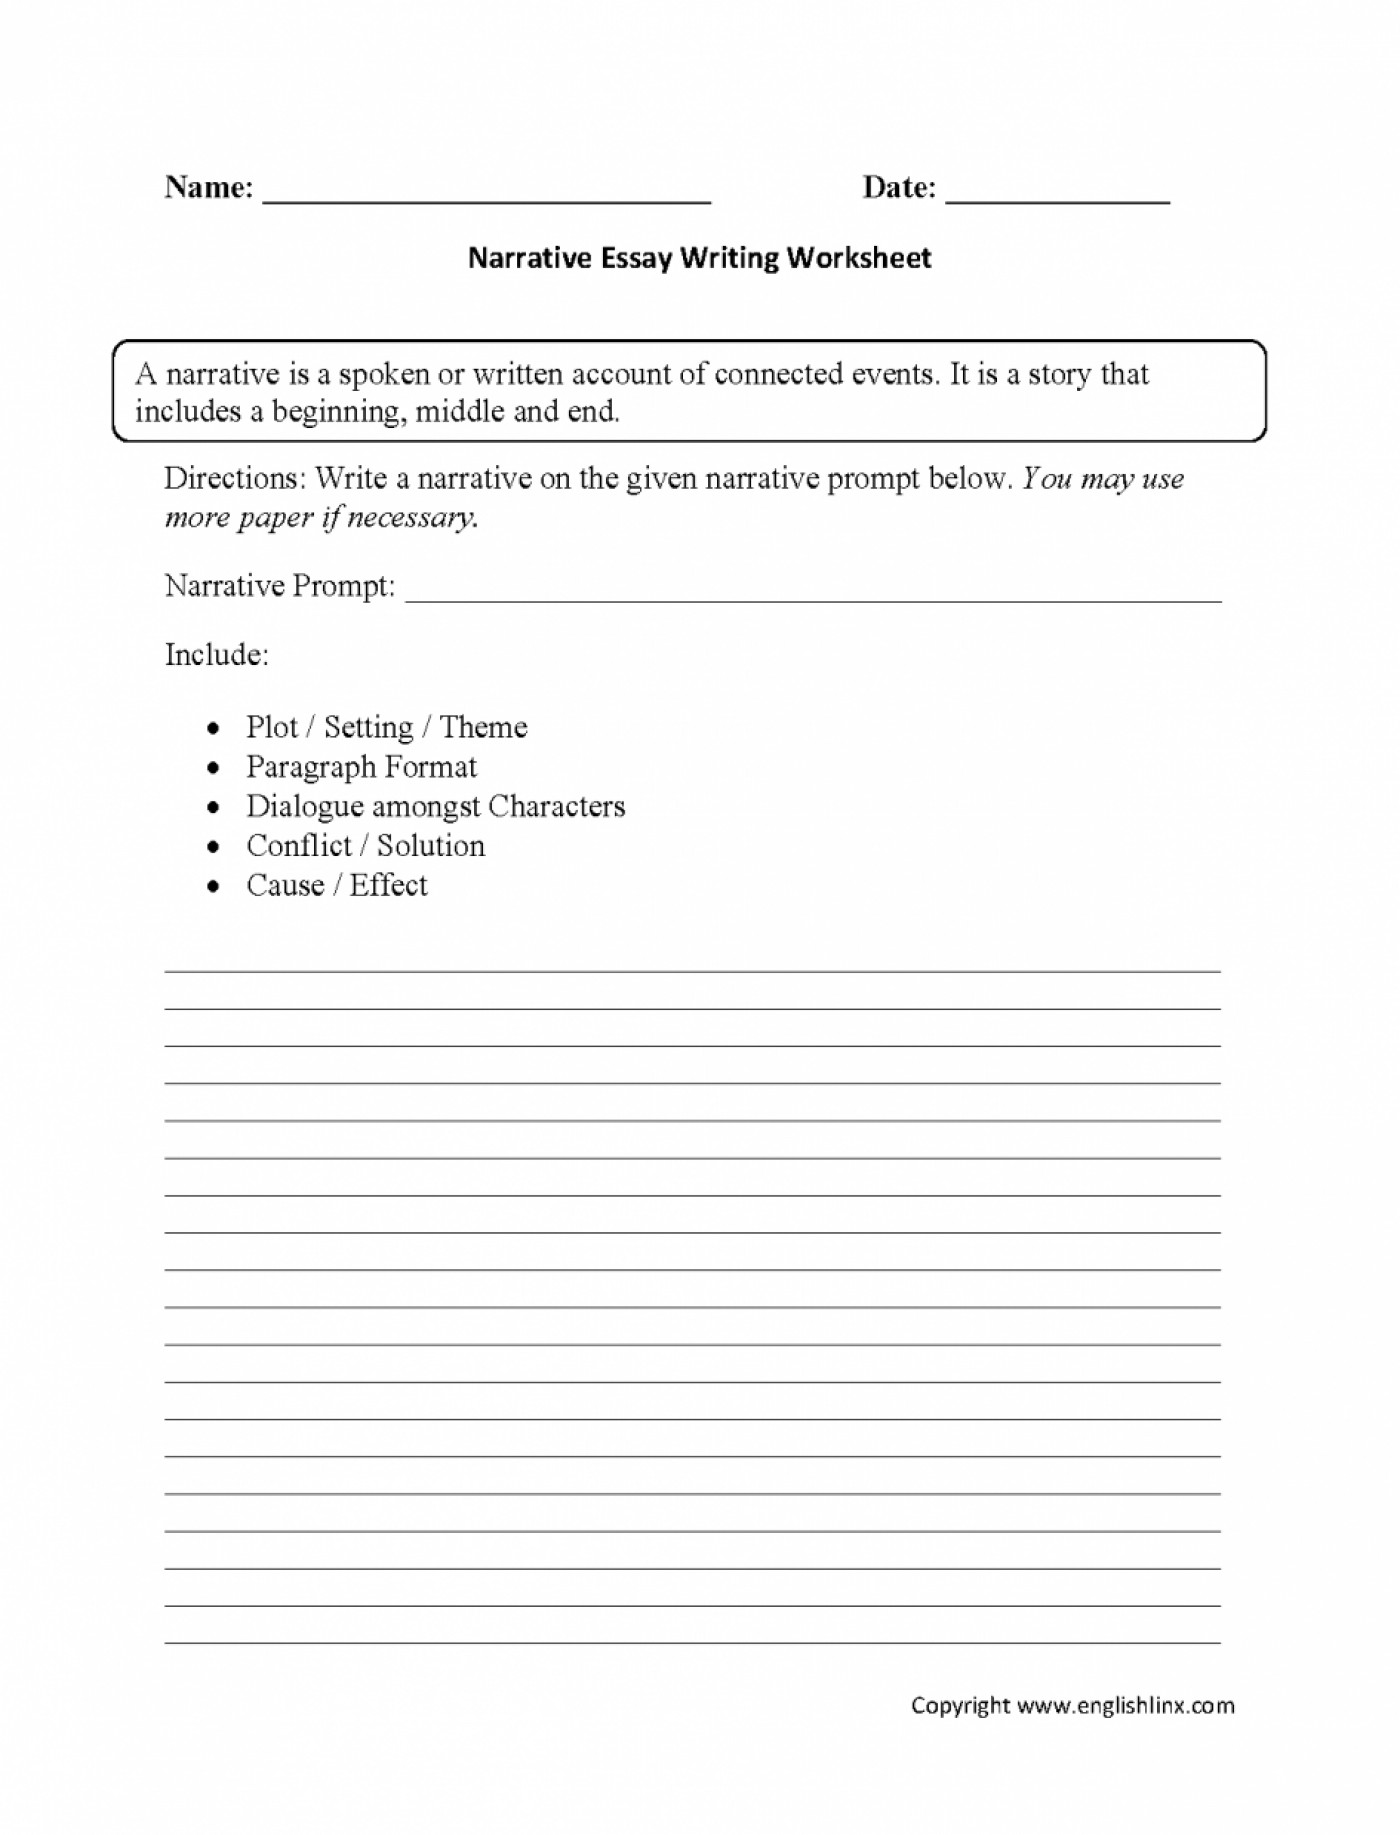 002 Essay Grader Example 3rd Grade Paragraph Writing Worksheets Download Free Third Printa Worksheet Awful Gre Python Grading Software 1400